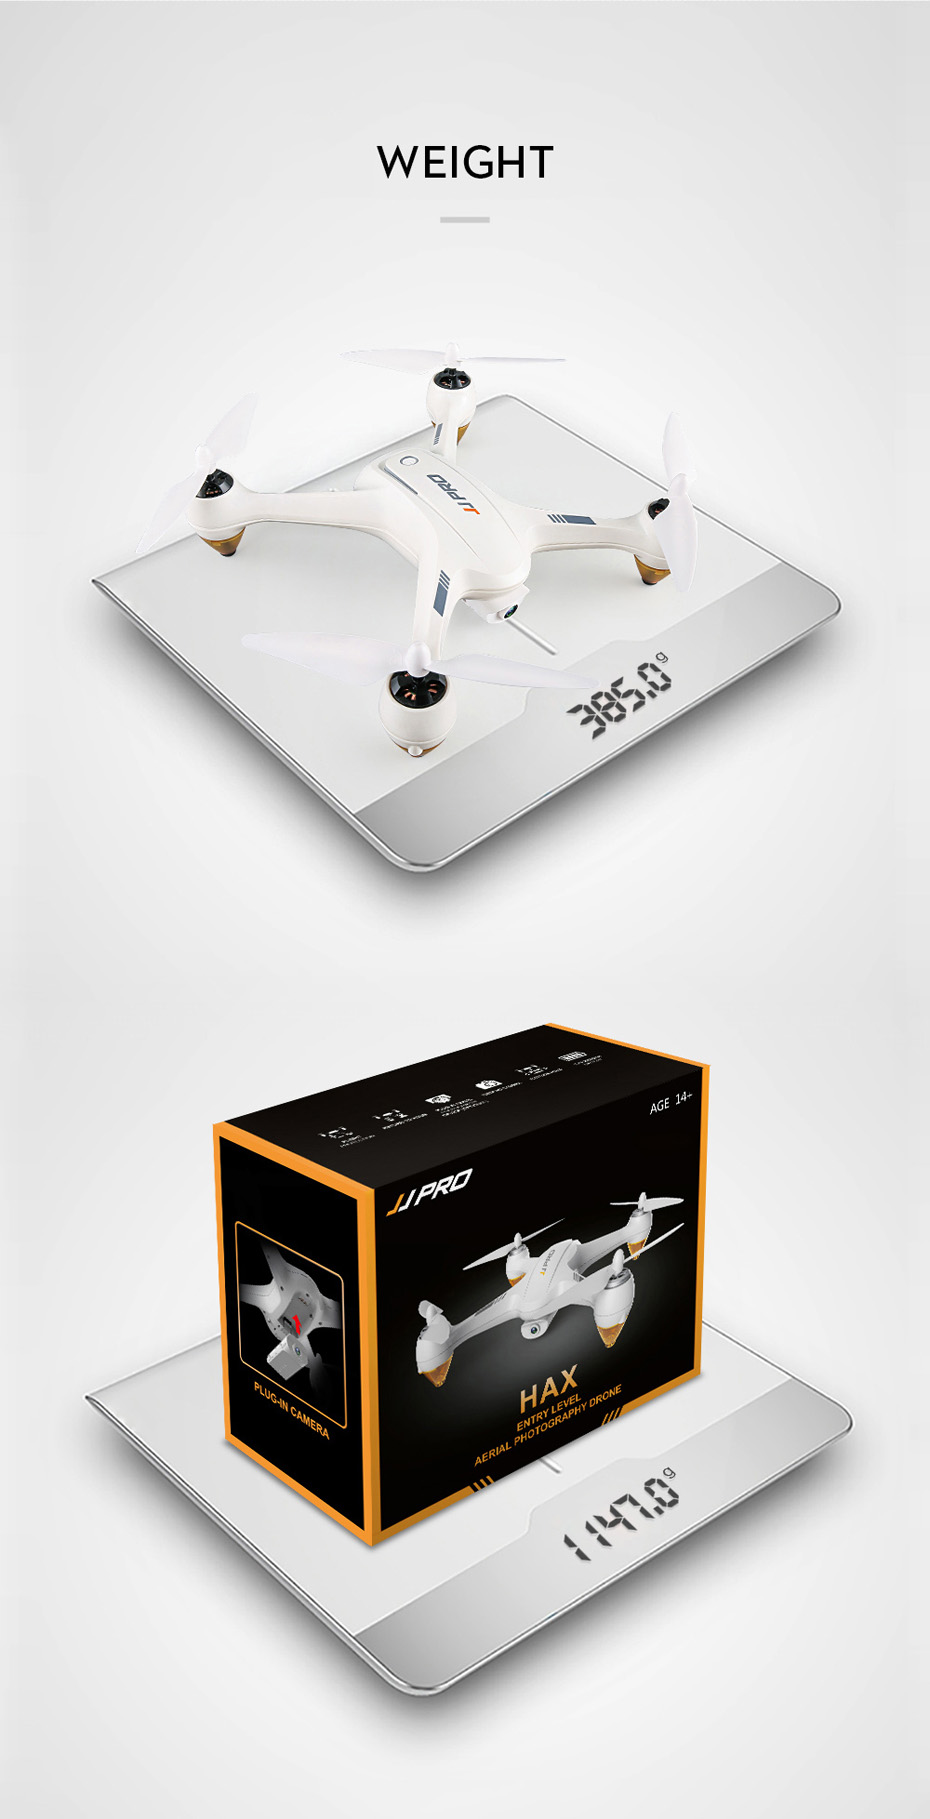 JJRC JJPRO X3 GPS Drone with Camera 1080P RC Quadcopter Profissional Brushless Motor 00mAh Battery GPS Positioning 22